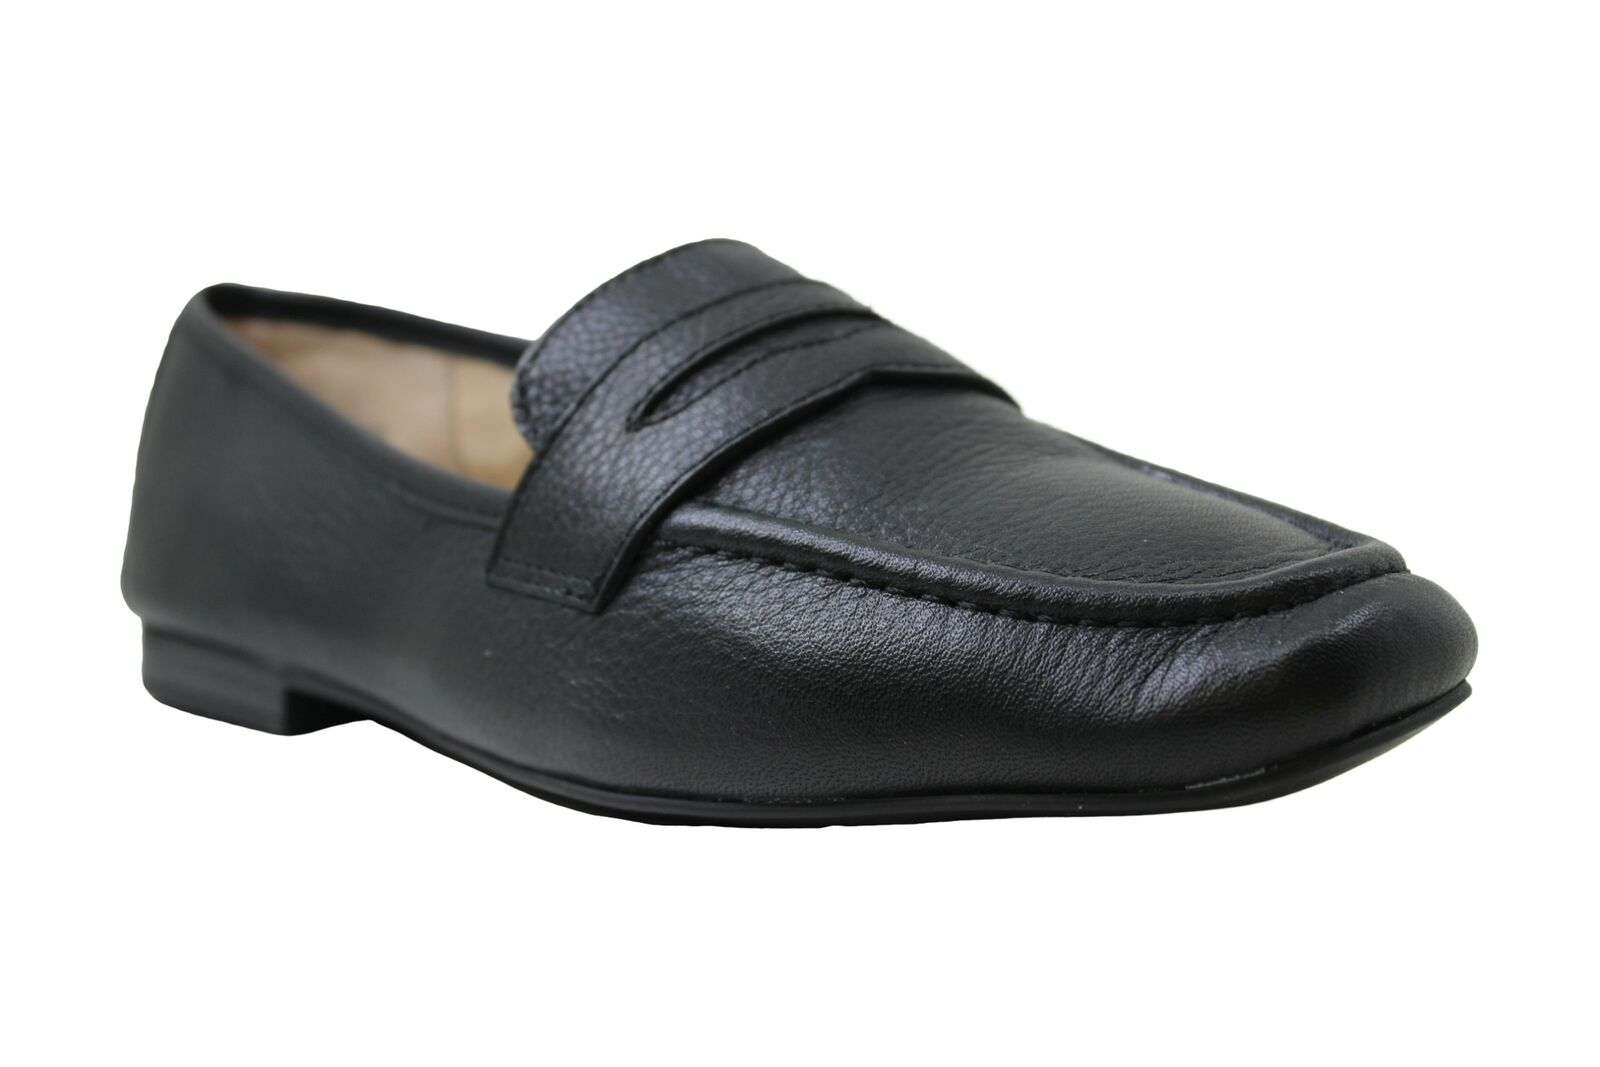 American Rag Womens cammie Leather Closed Toe Loafers, Black Leather, Size 7.0